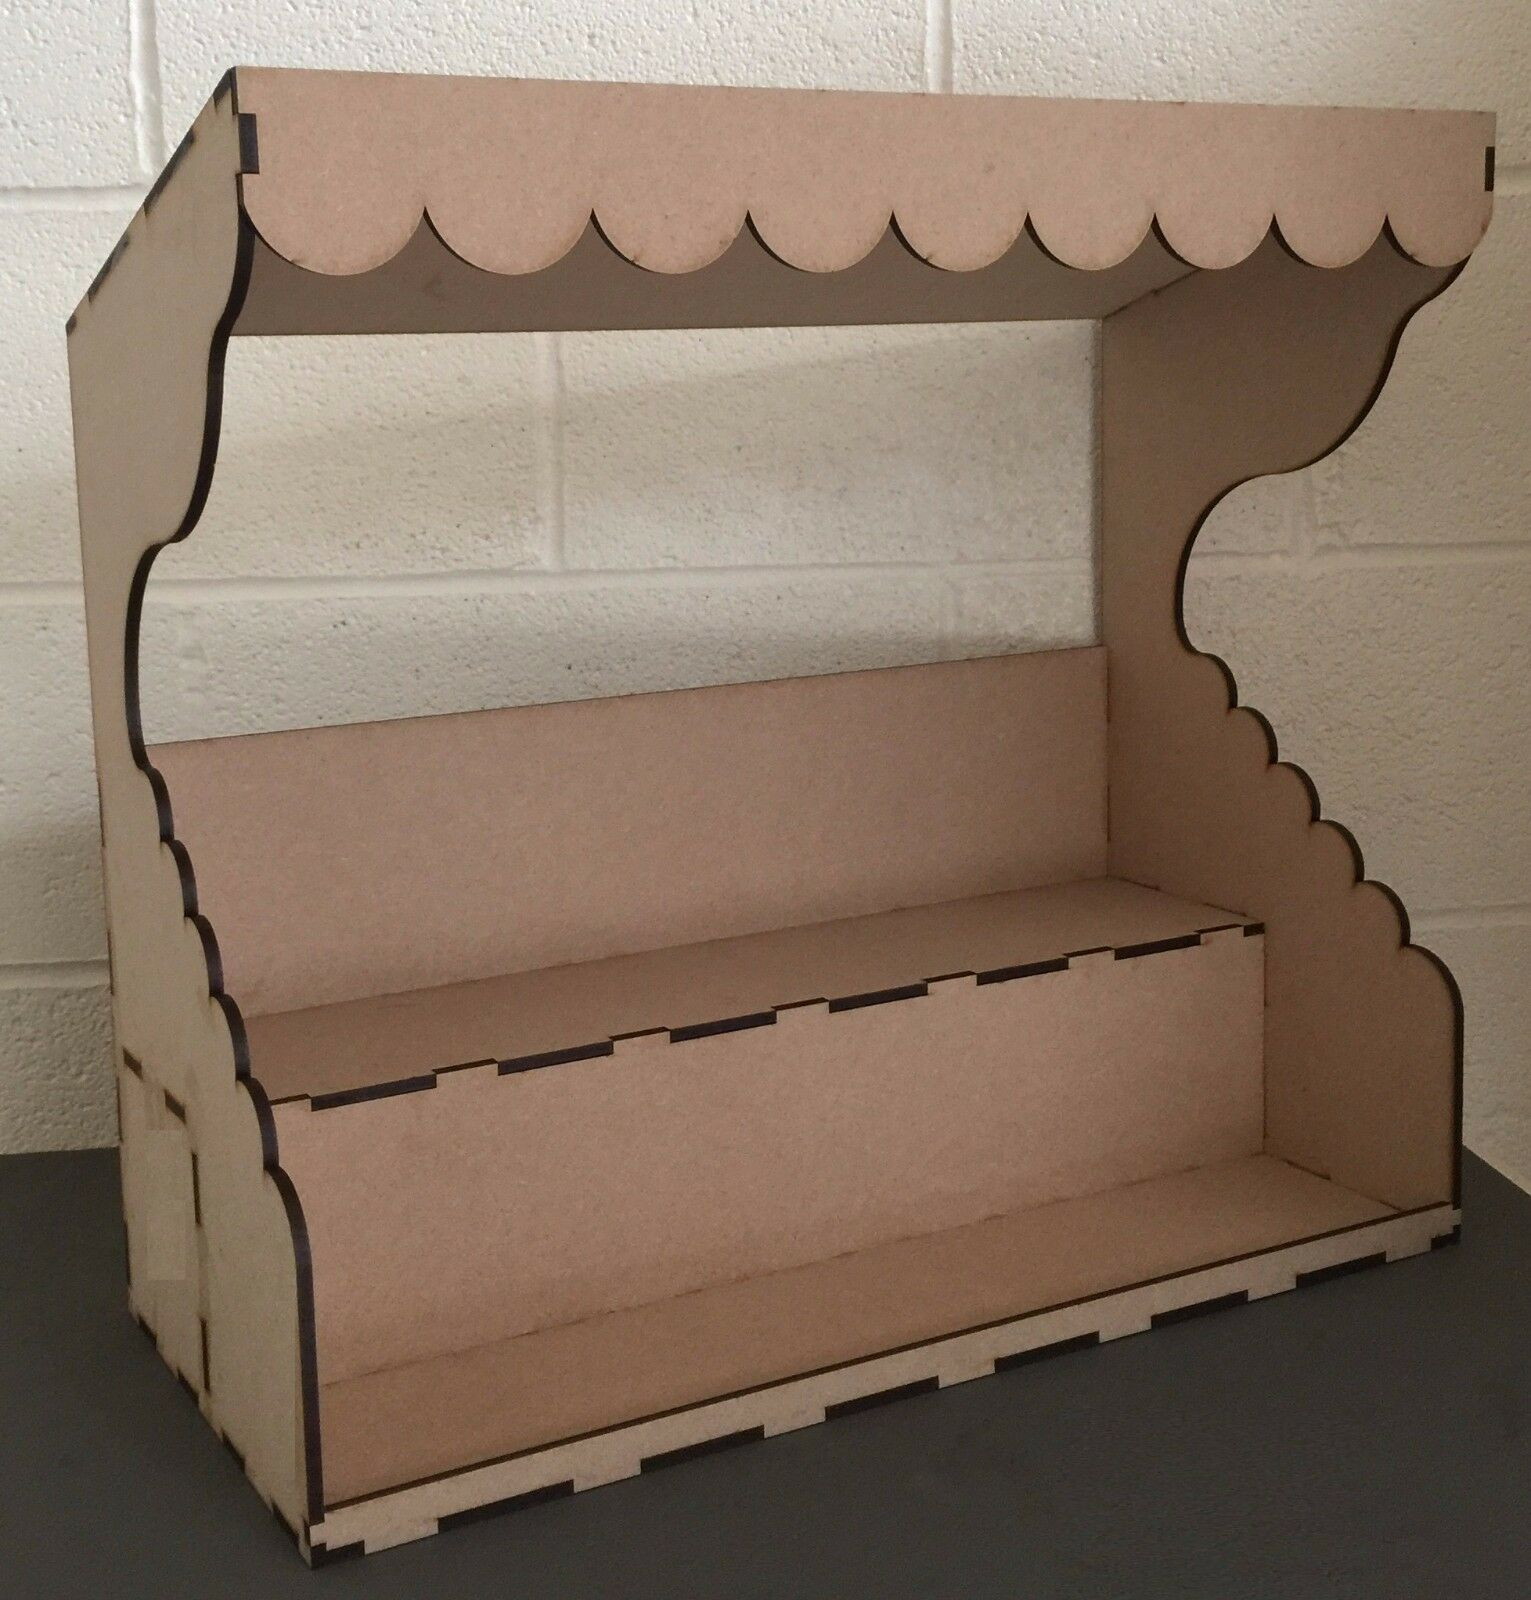 Exhibition Stall Xl : Y126 xl craft fair stall american style stand sweet display unit